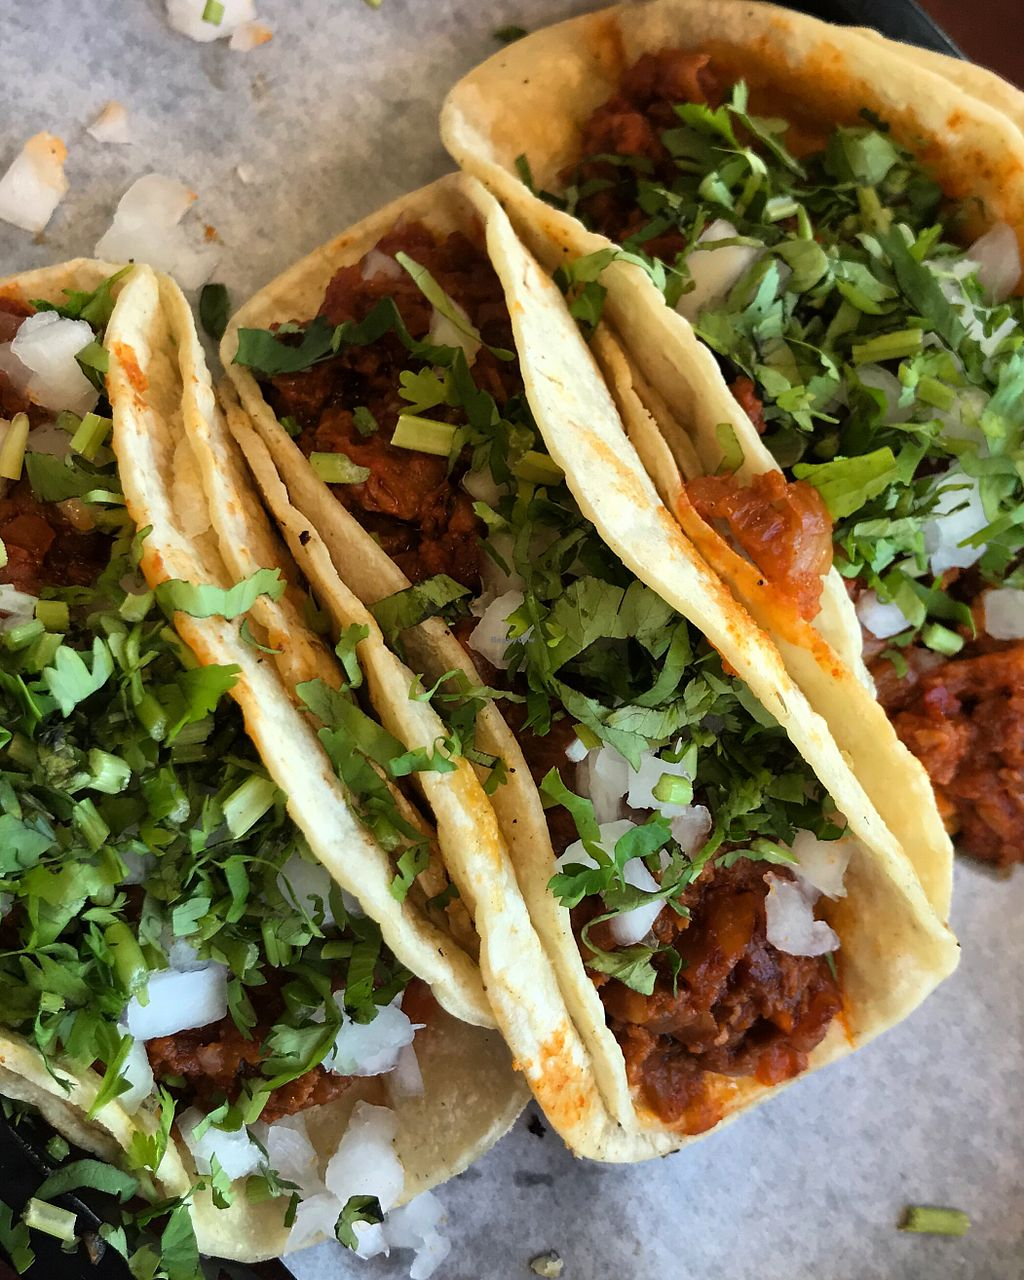 Soy Chorizo Tacos With Cilantro Onion At Totopos Mexican Restaurant In Naperville